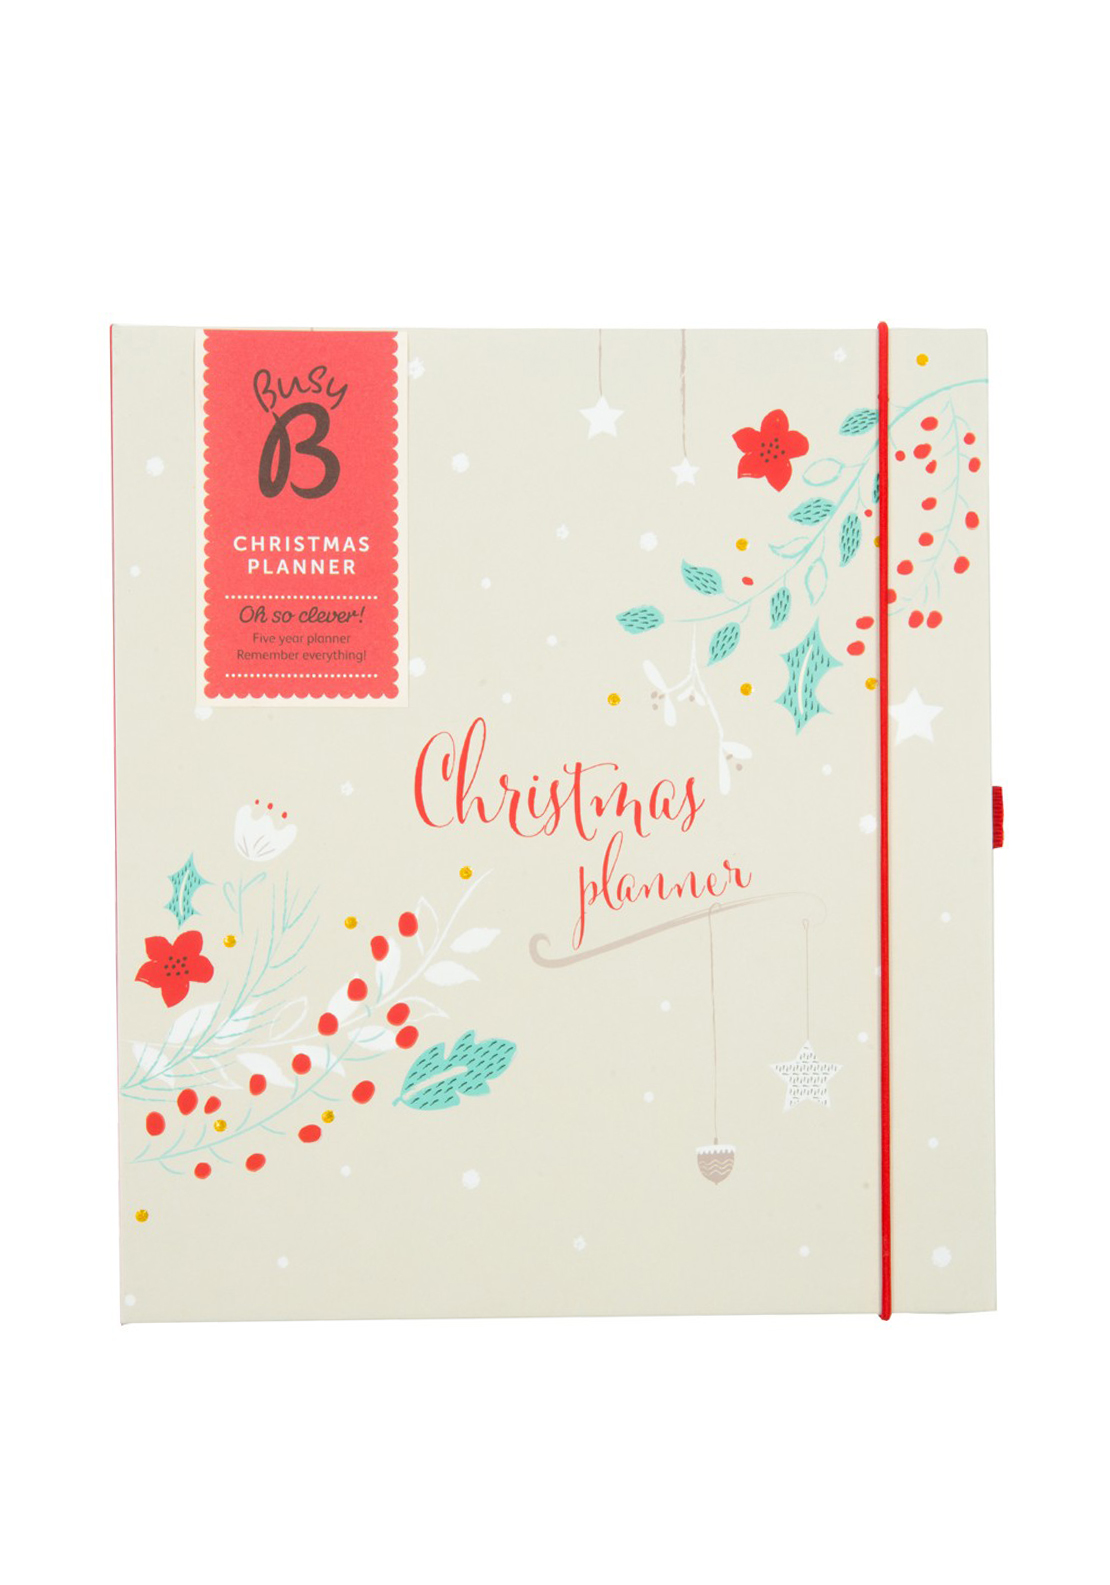 Busy B Christmas Planner